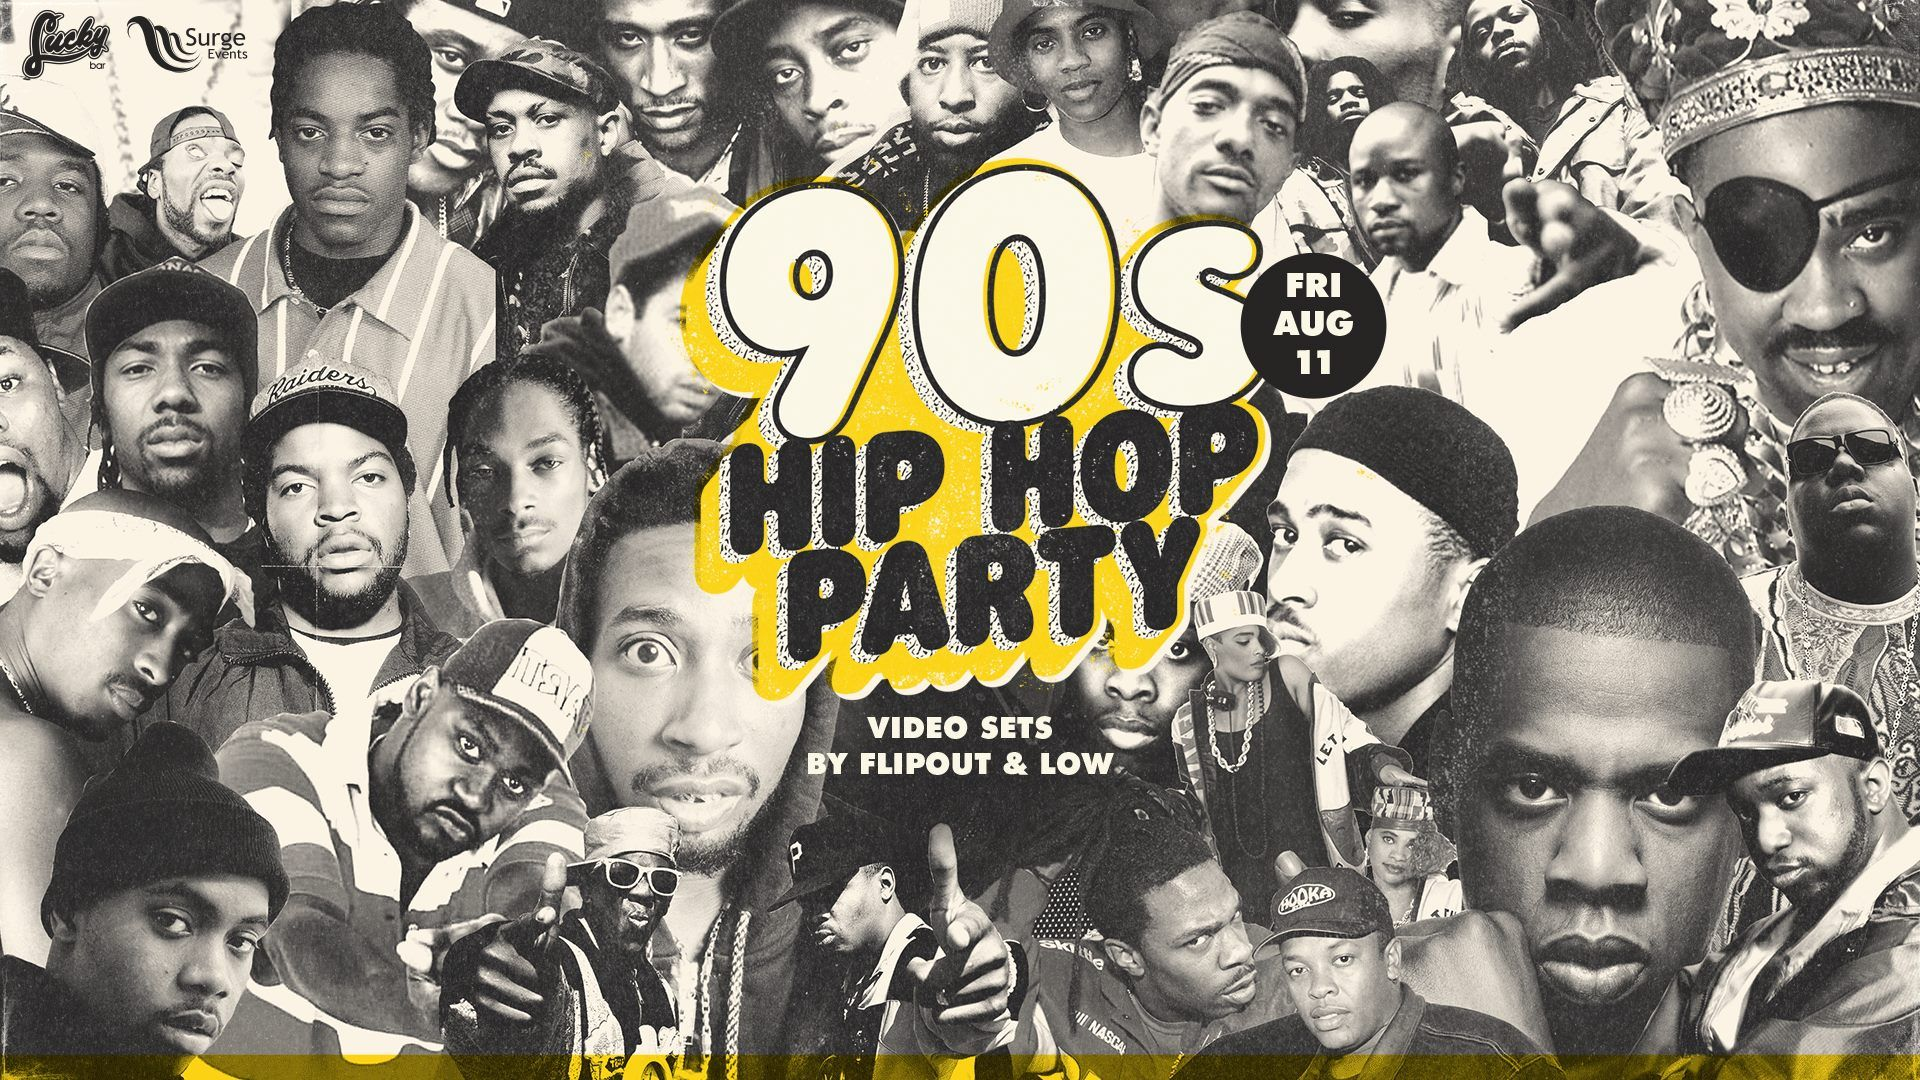 1920x1080 Tonight - 90s Hip Hop Party